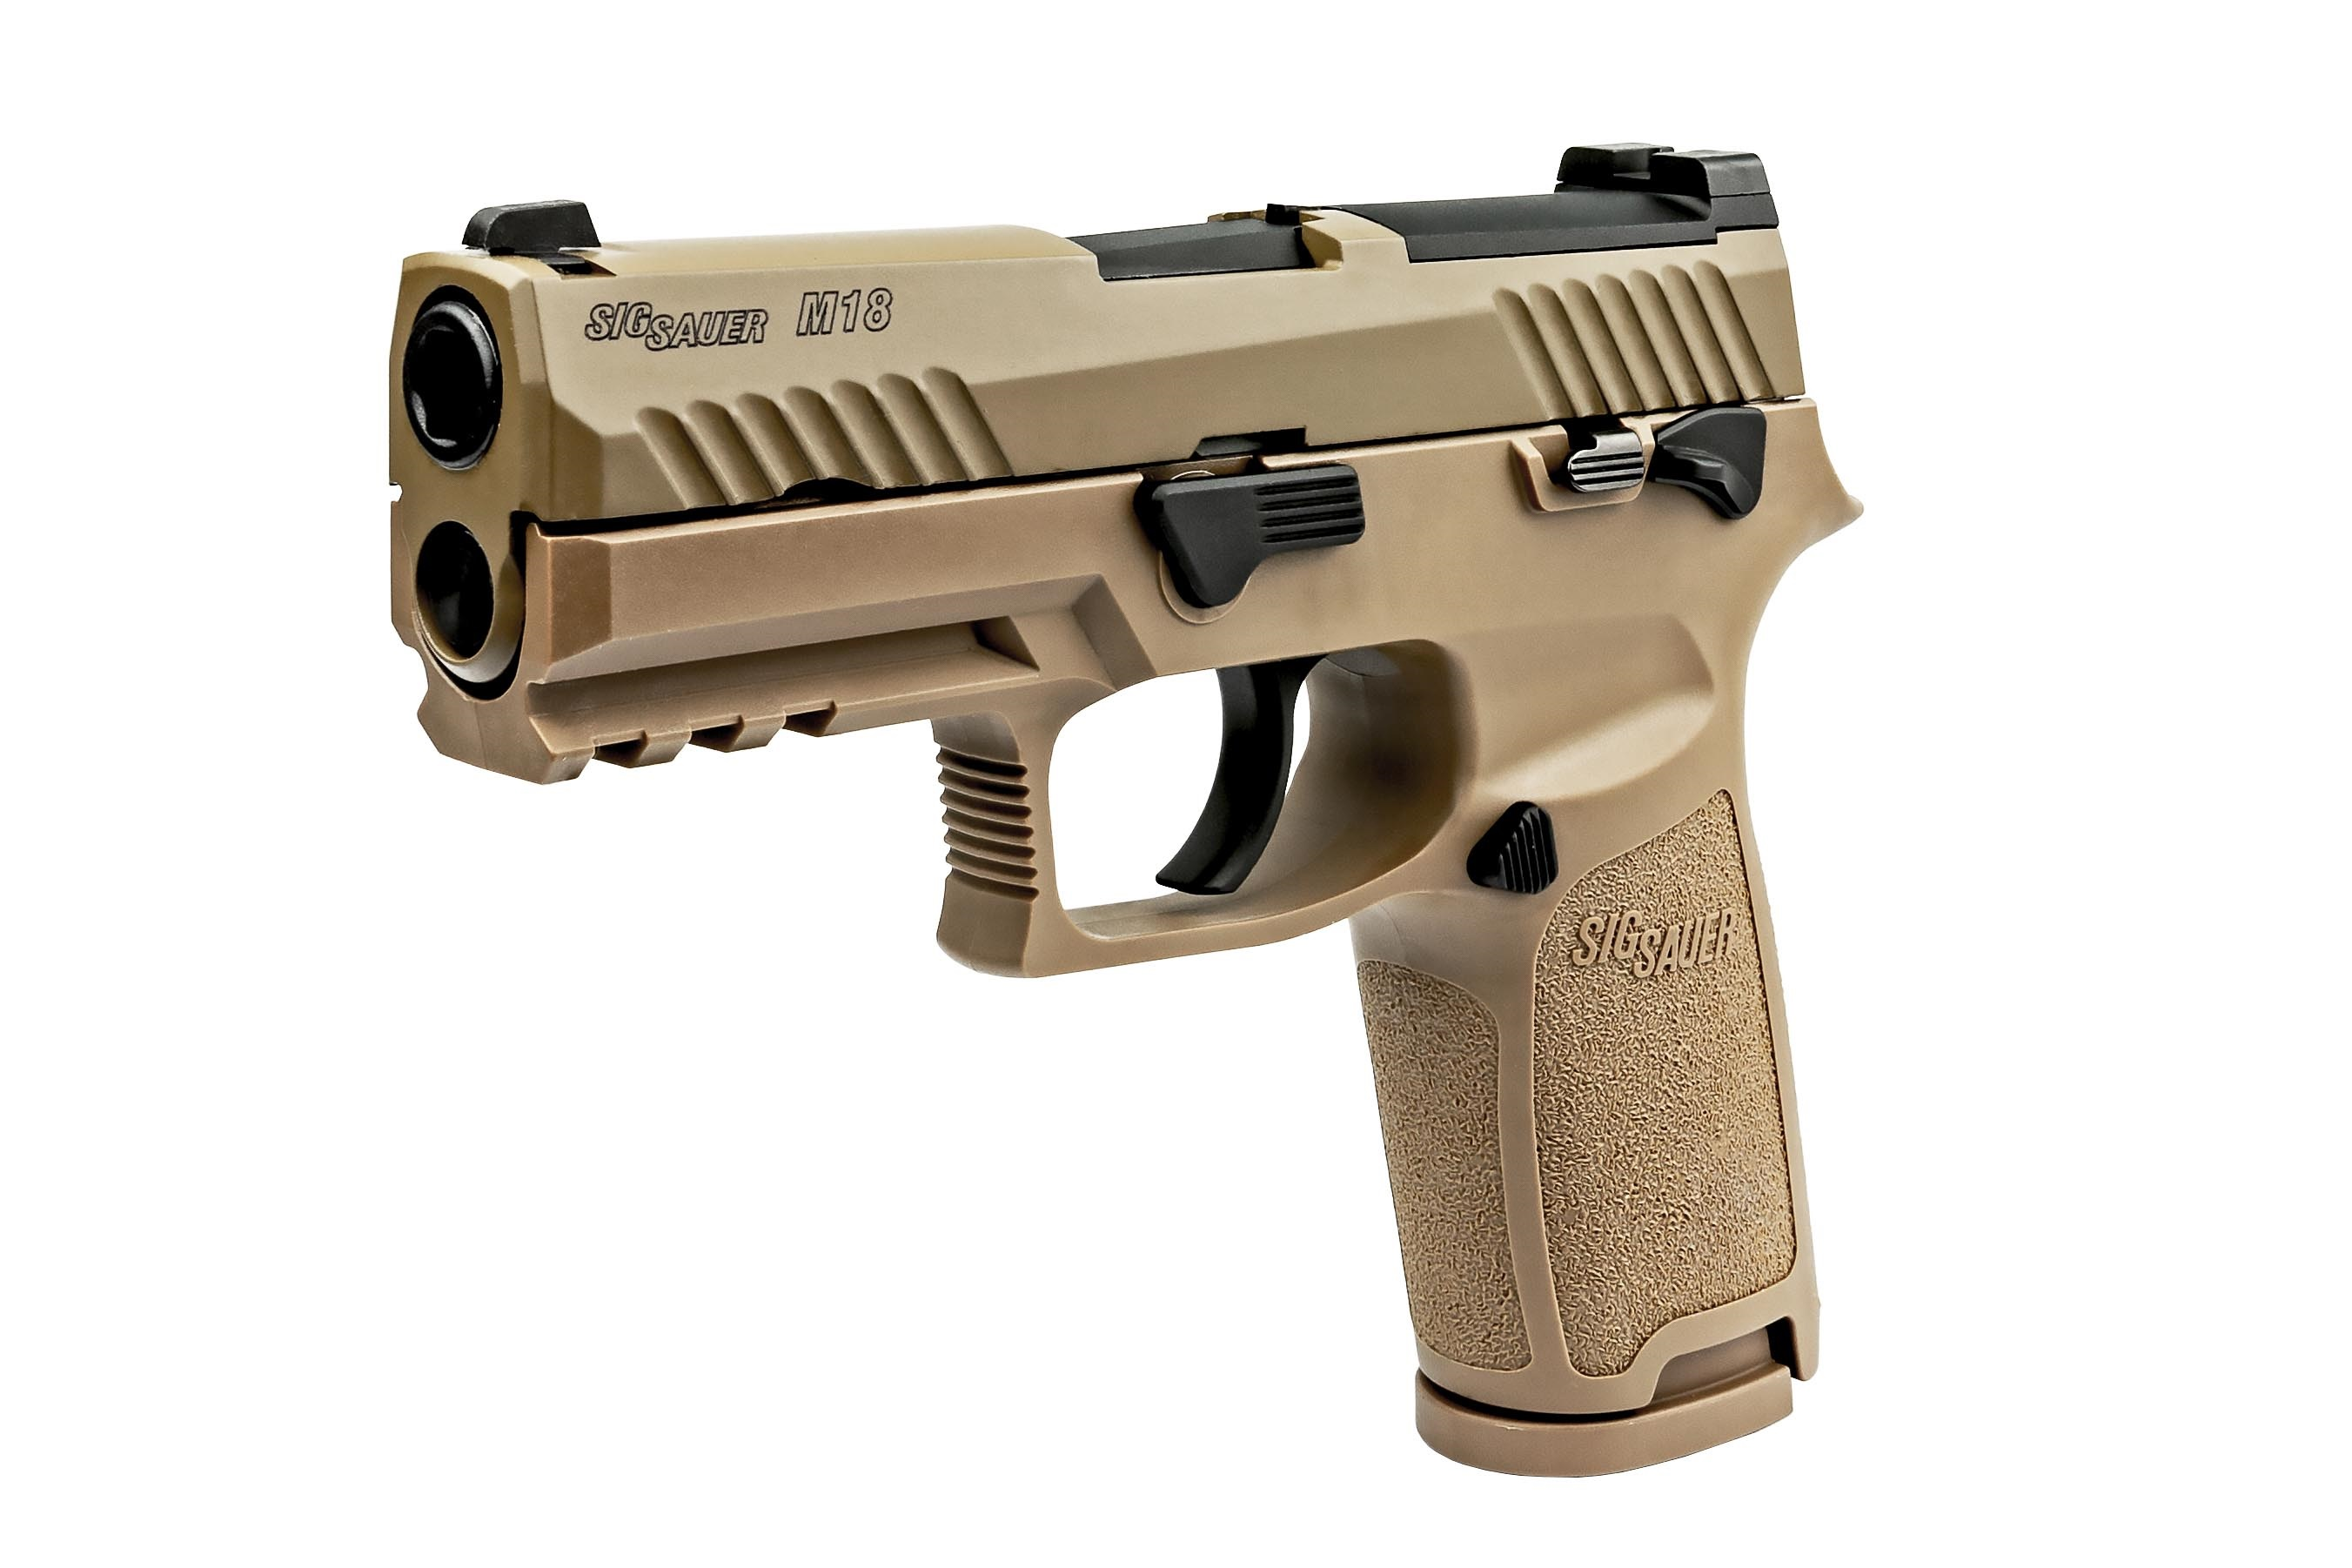 SIG Airsoft/Umarex P320-M18 ガスブローバックピストル (Official Licensed)